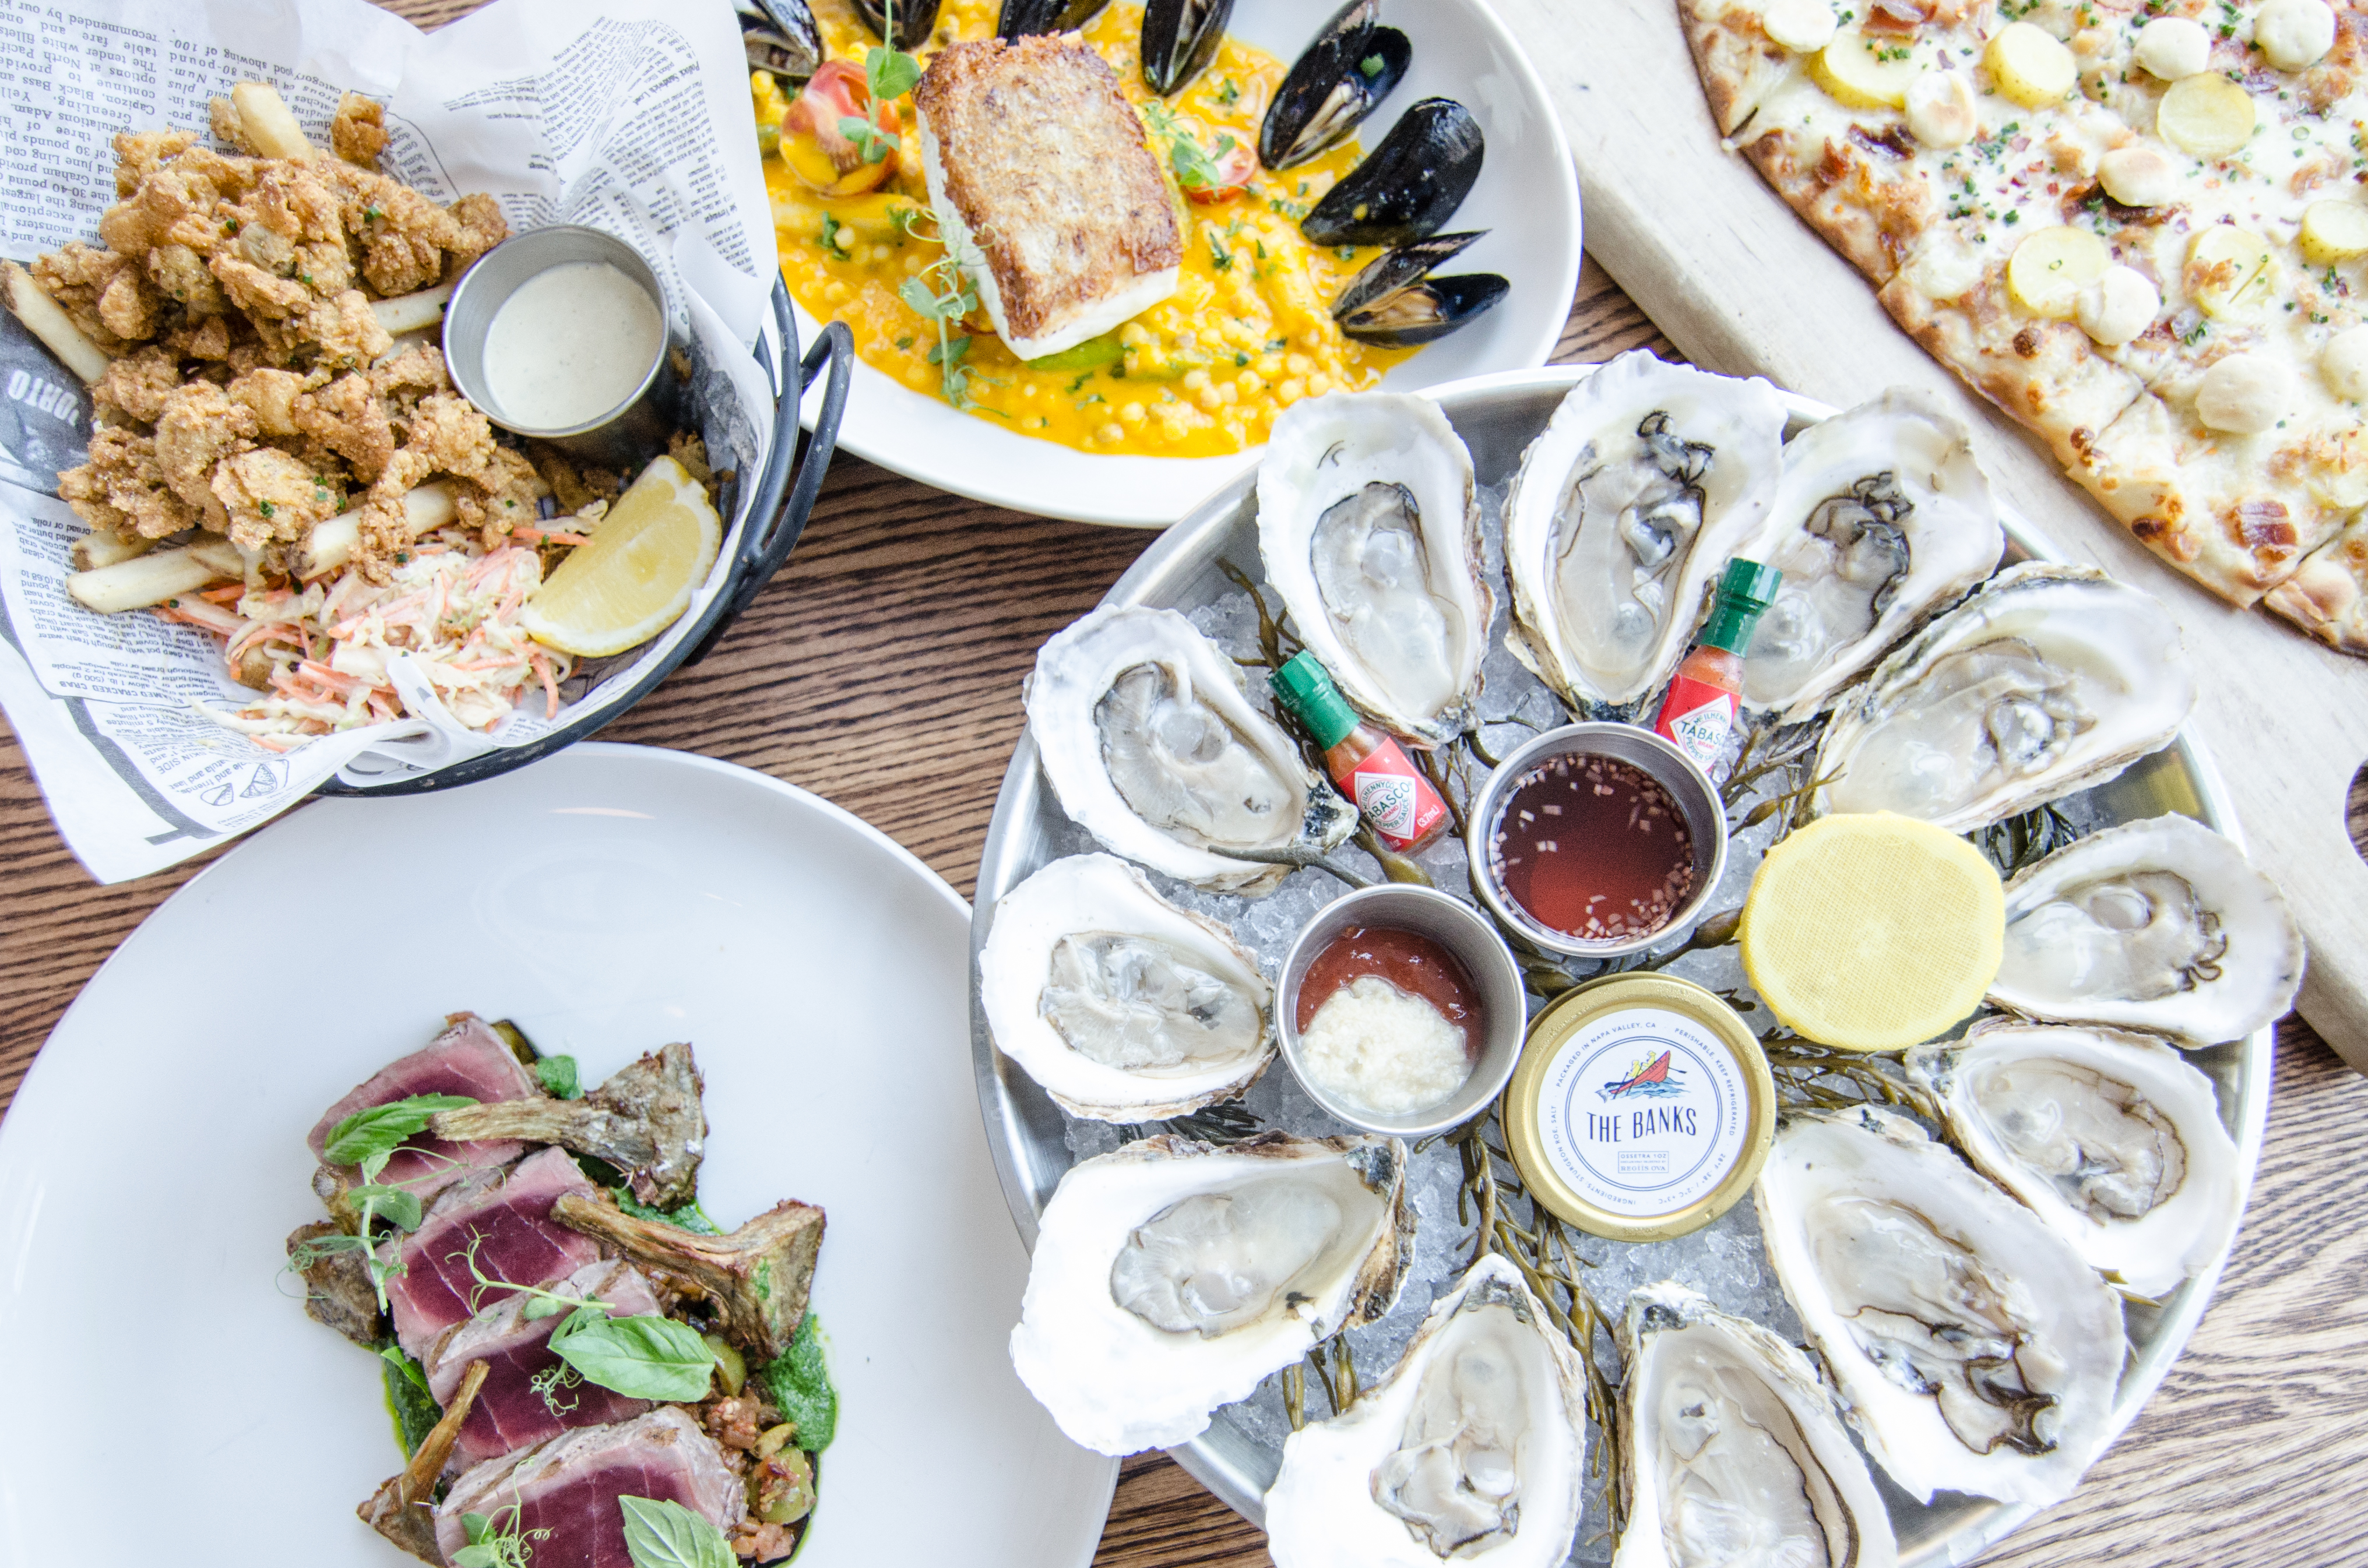 Overhead view of a table full of seafood dishes, including a platter of oysters, a basket of fried clams and fries, rare bluefin tuna, and more